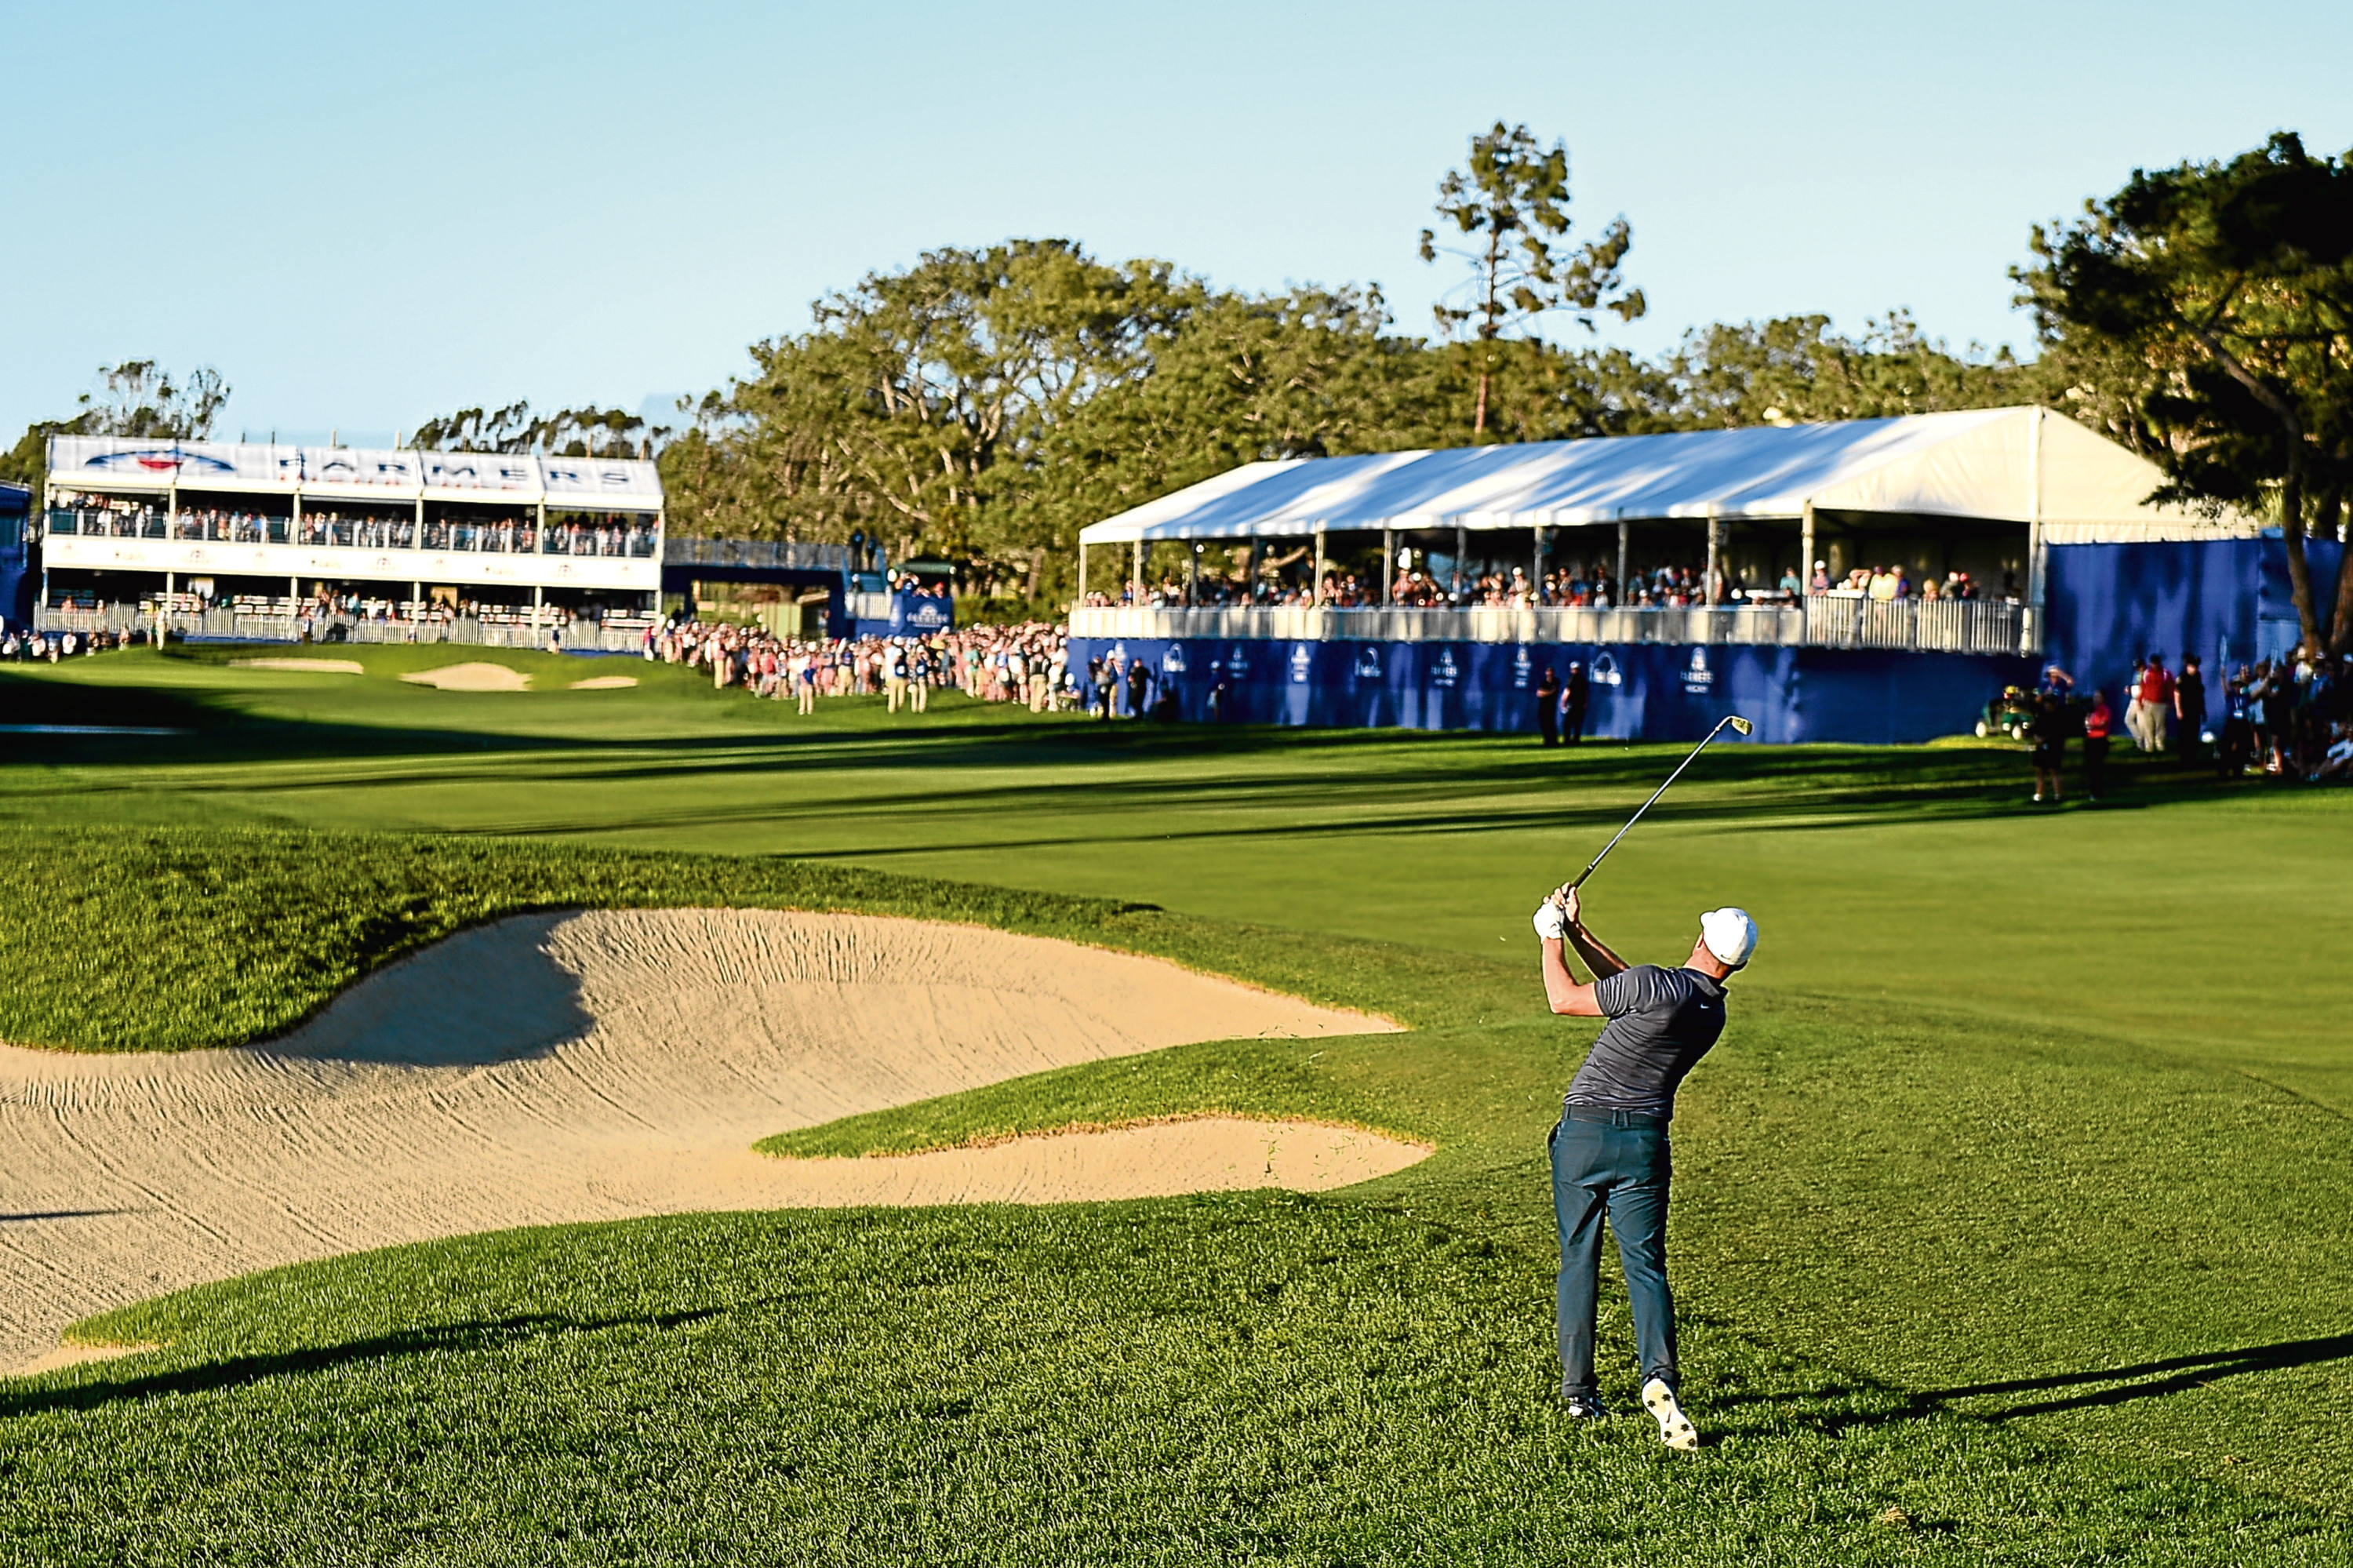 SAN DIEGO, CA - JANUARY 28:  Alex Noren of Sweden plays a shot from a bunker on the 18th hole during the second playoff in the final round of the Farmers Insurance Open at Torrey Pines South  on January 28, 2018 in San Diego, California.  (Photo by Donald Miralle/Getty Images)